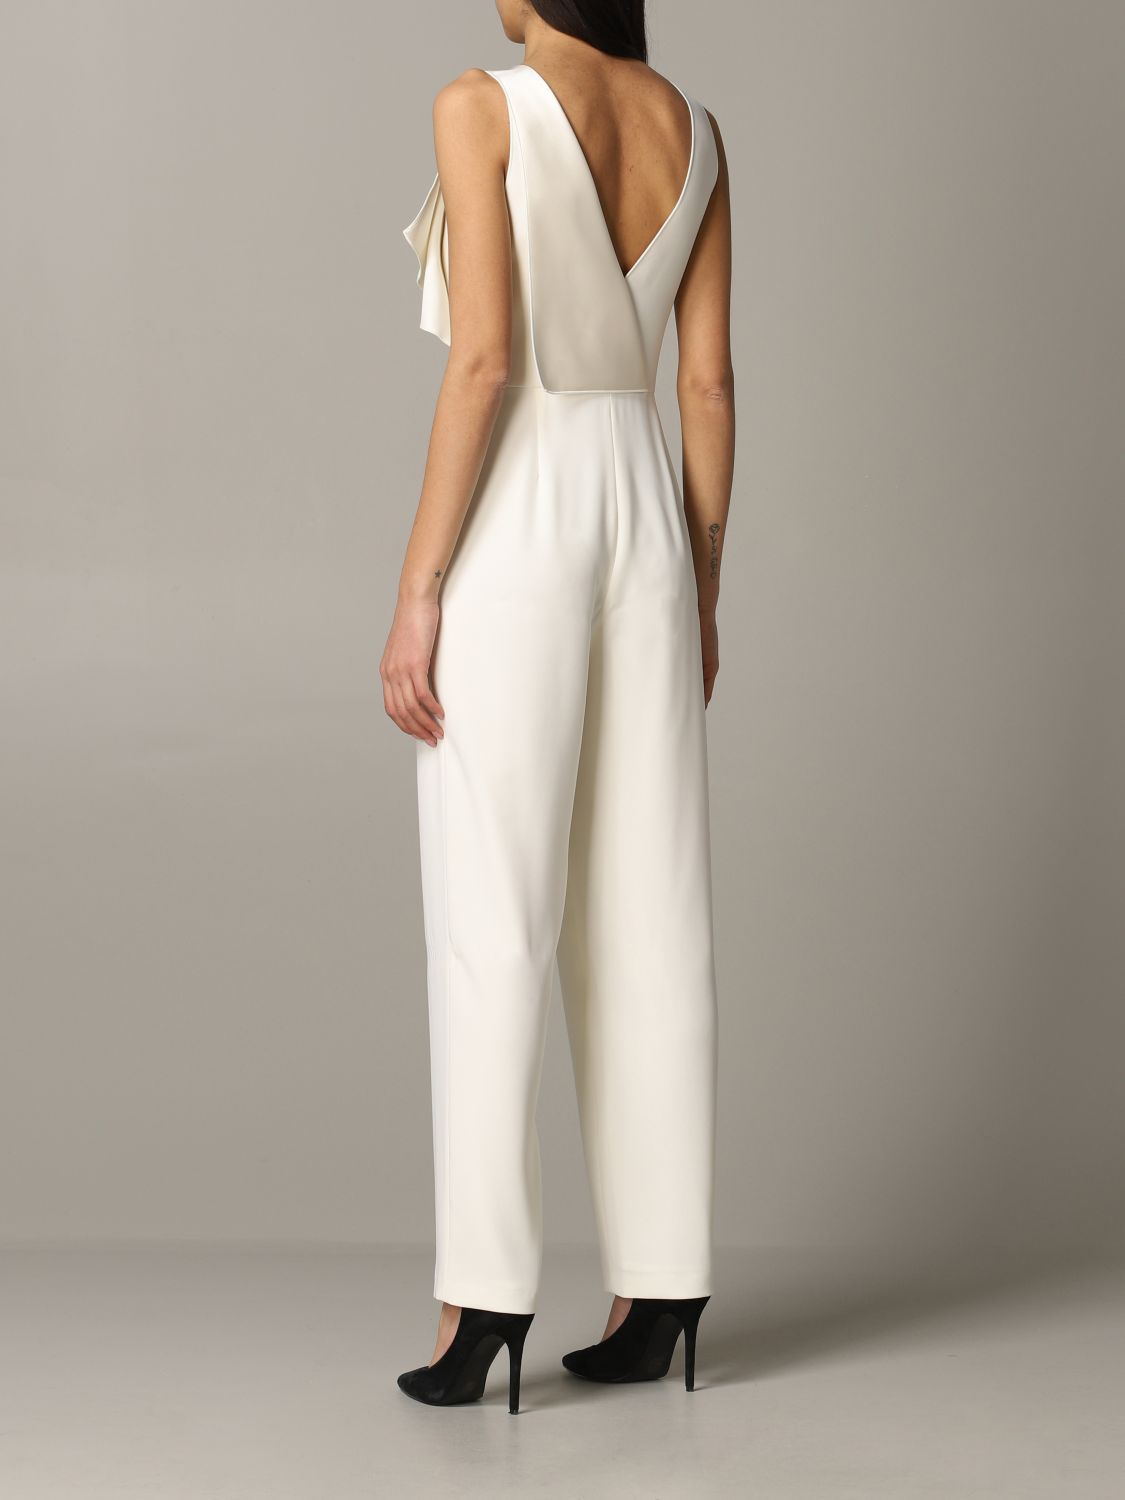 Emporio Armani suit in cady and satin white 2